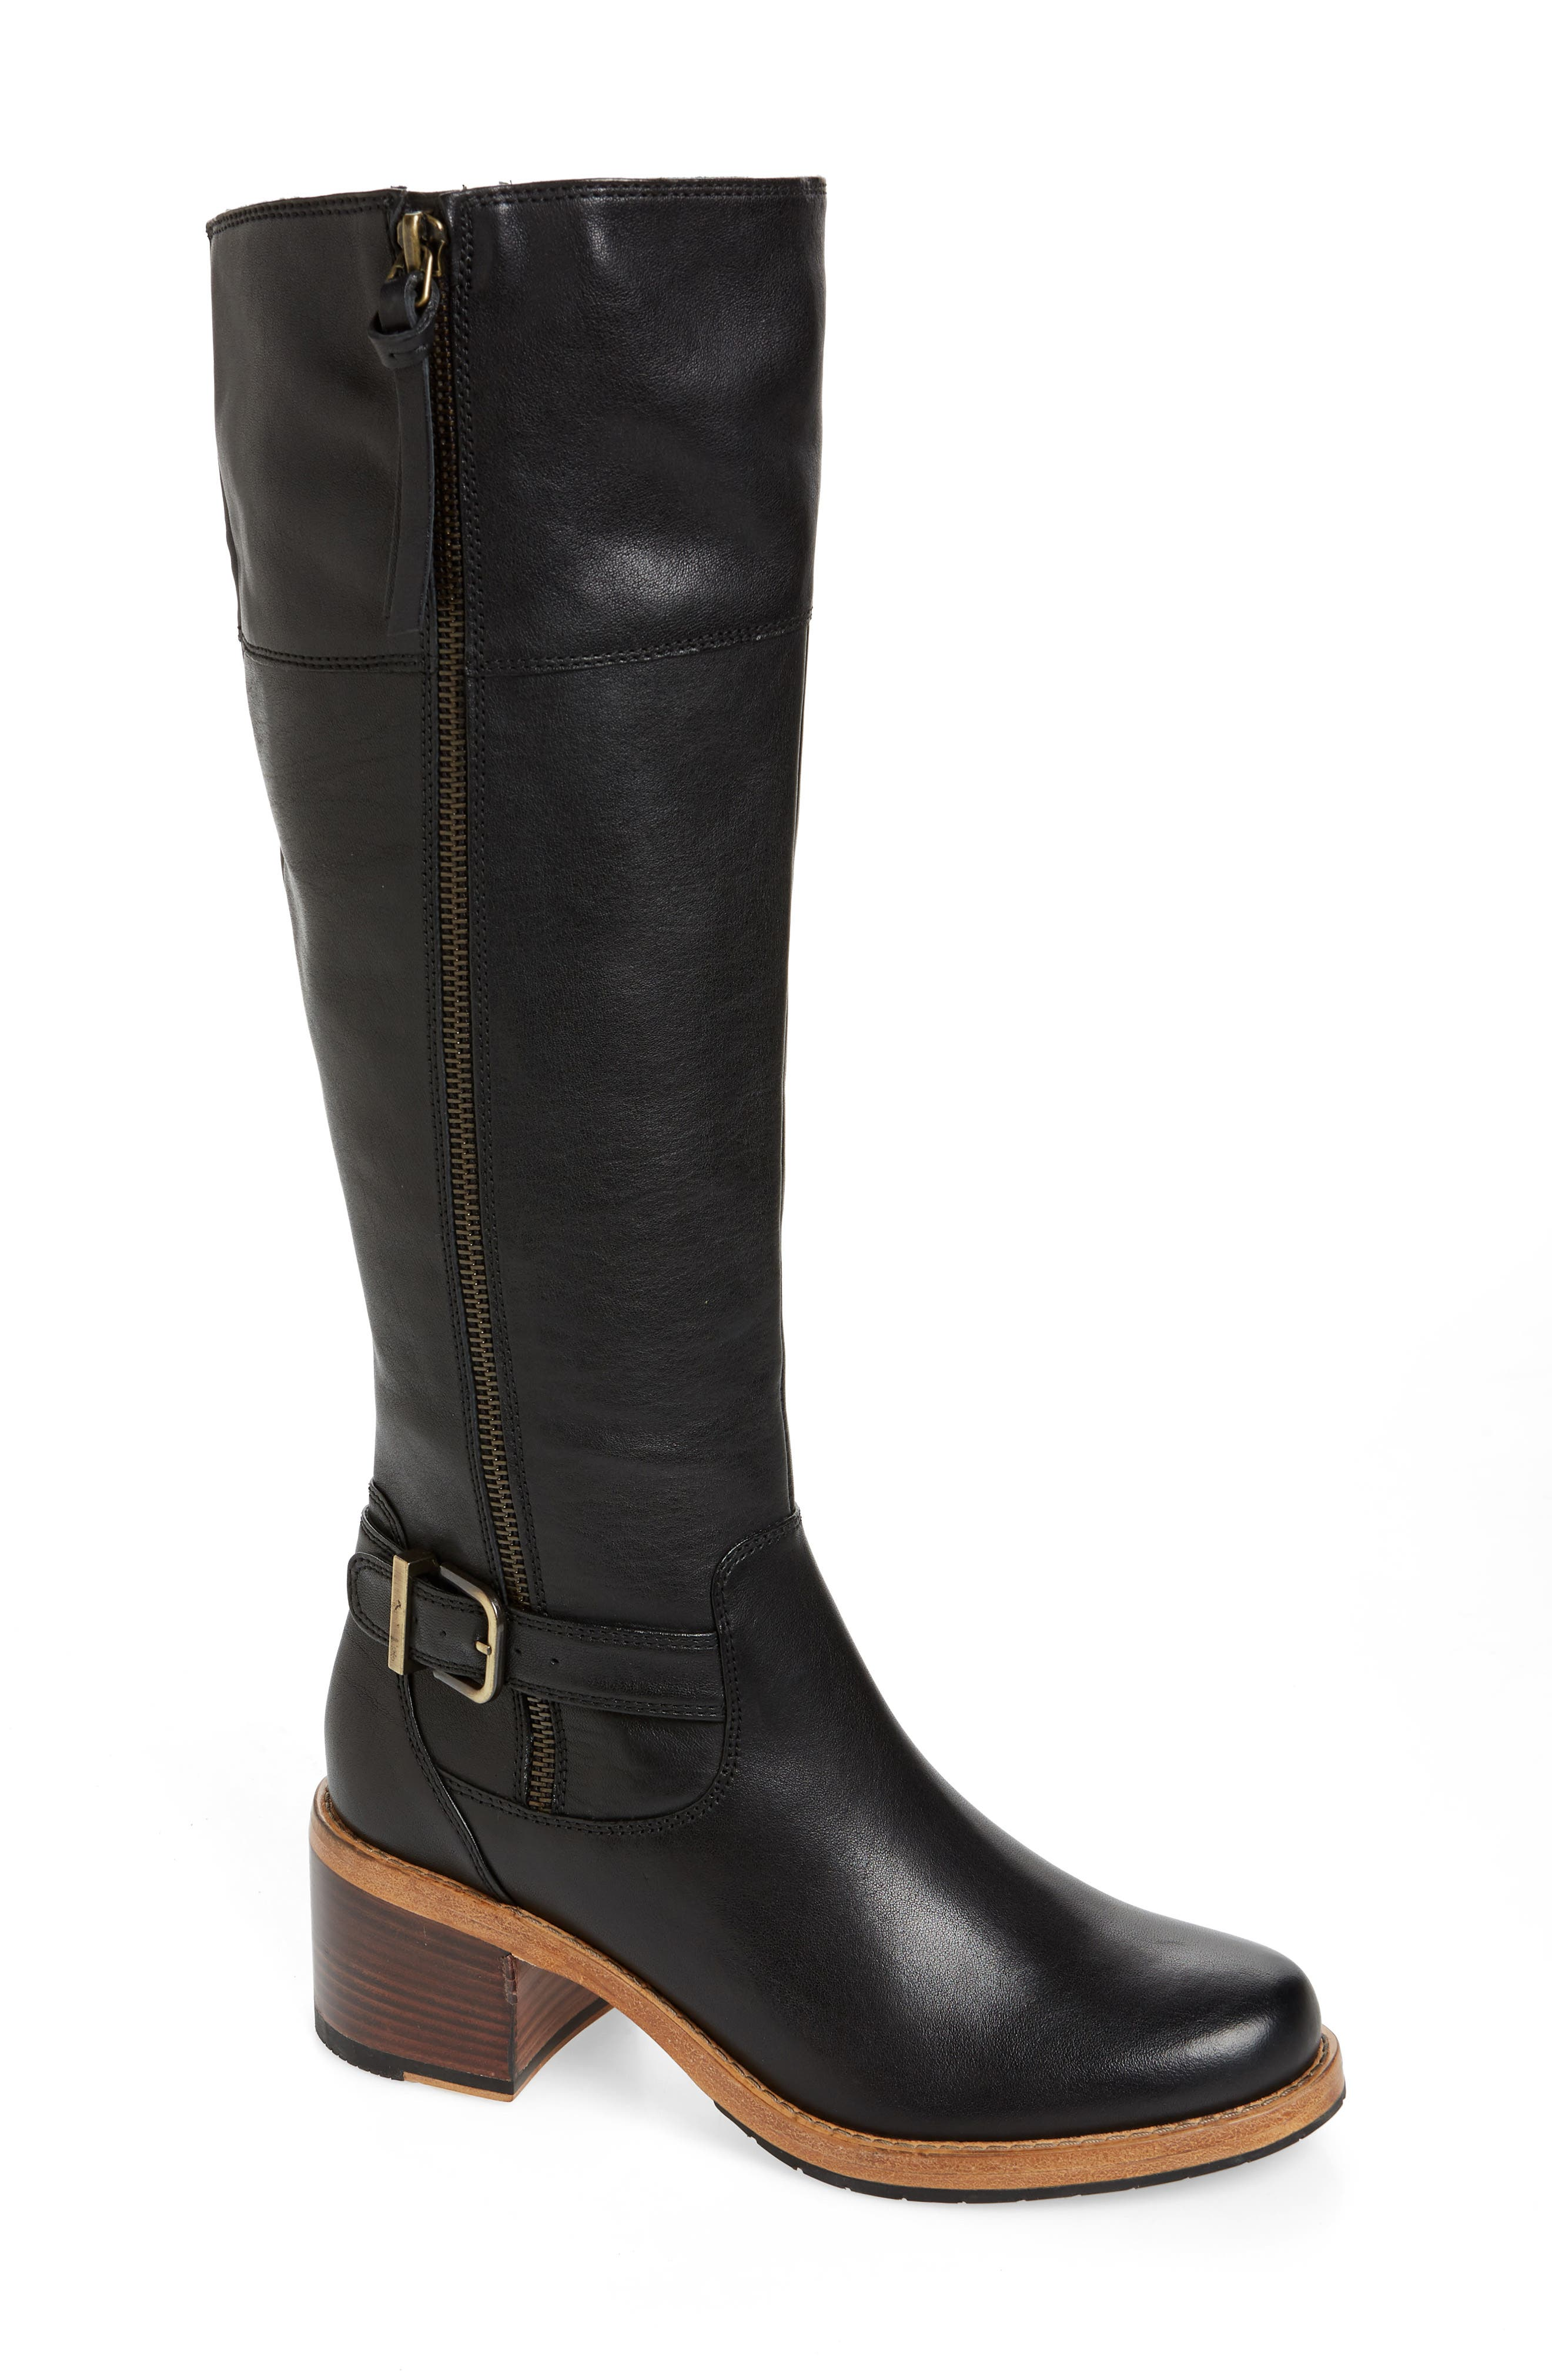 CLARKS<SUP>®</SUP> Clarkdale Sona Boot, Main, color, BLACK LEATHER